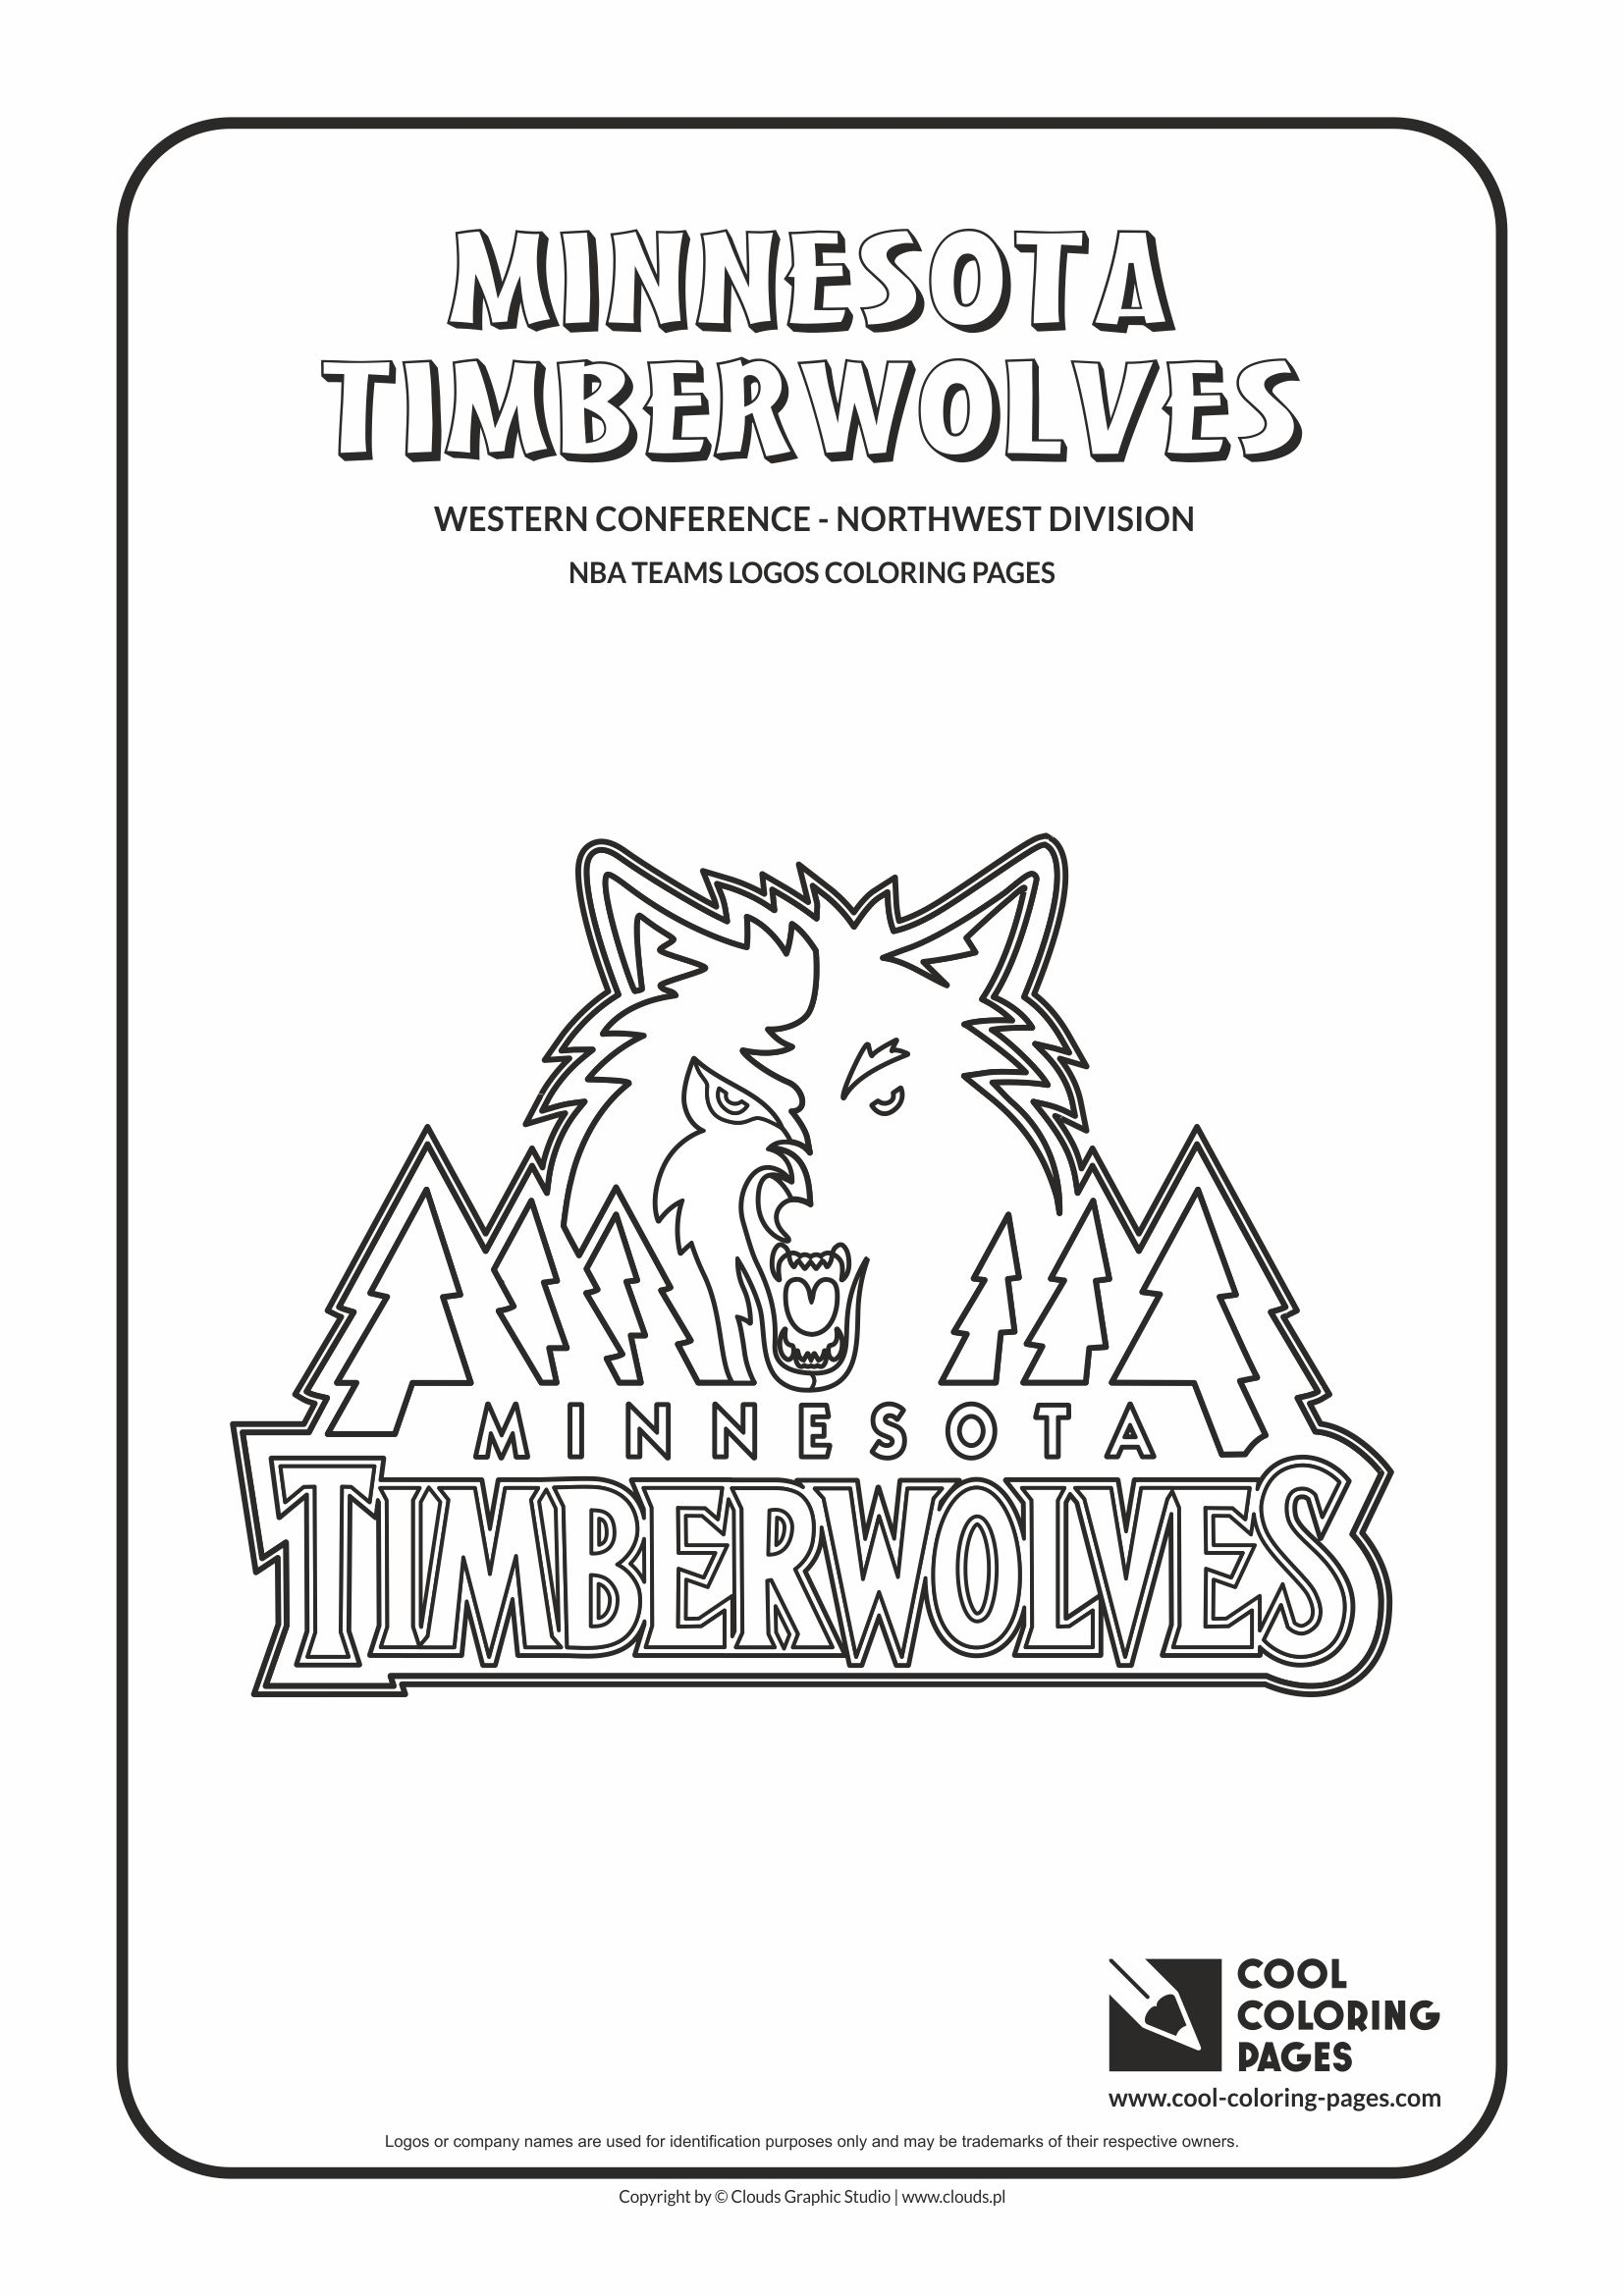 Cool coloring pages nba basketball clubs logos western conference northwest division minnesota